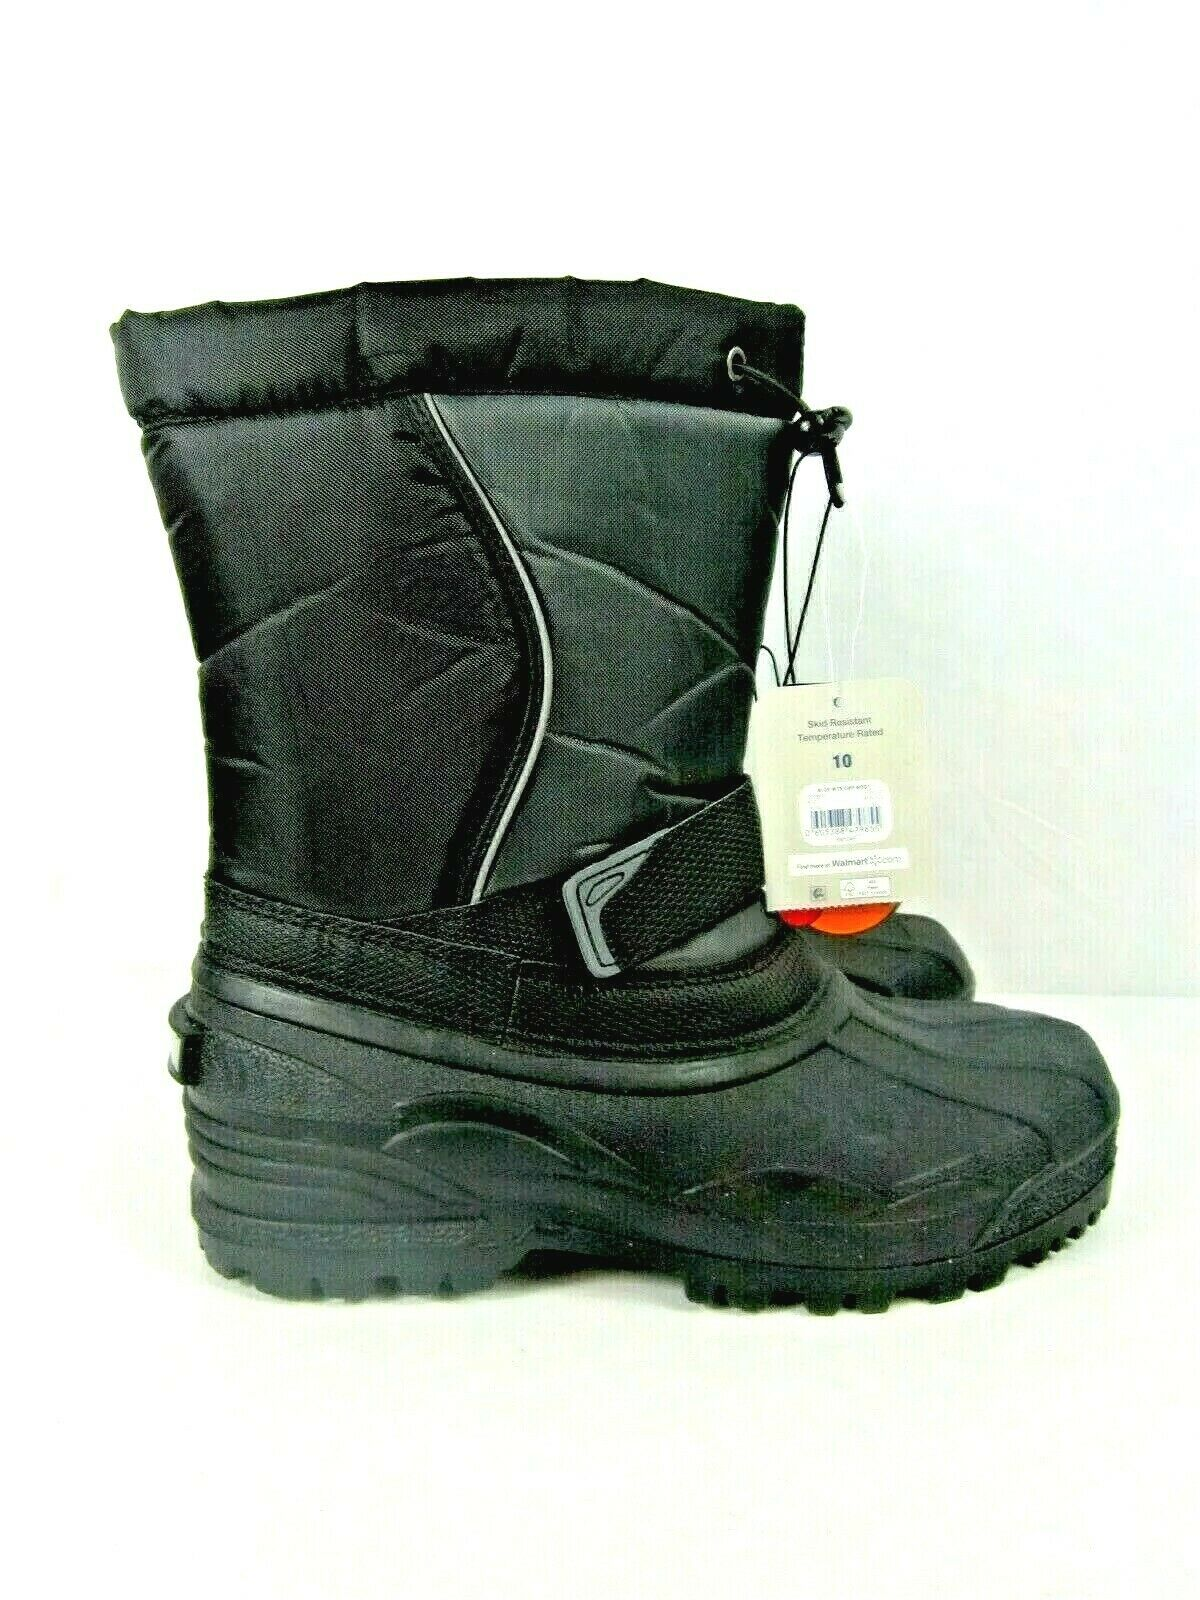 Mens Winter Boots George Essential Size US10 Skid Resistant Cold Weather Rated